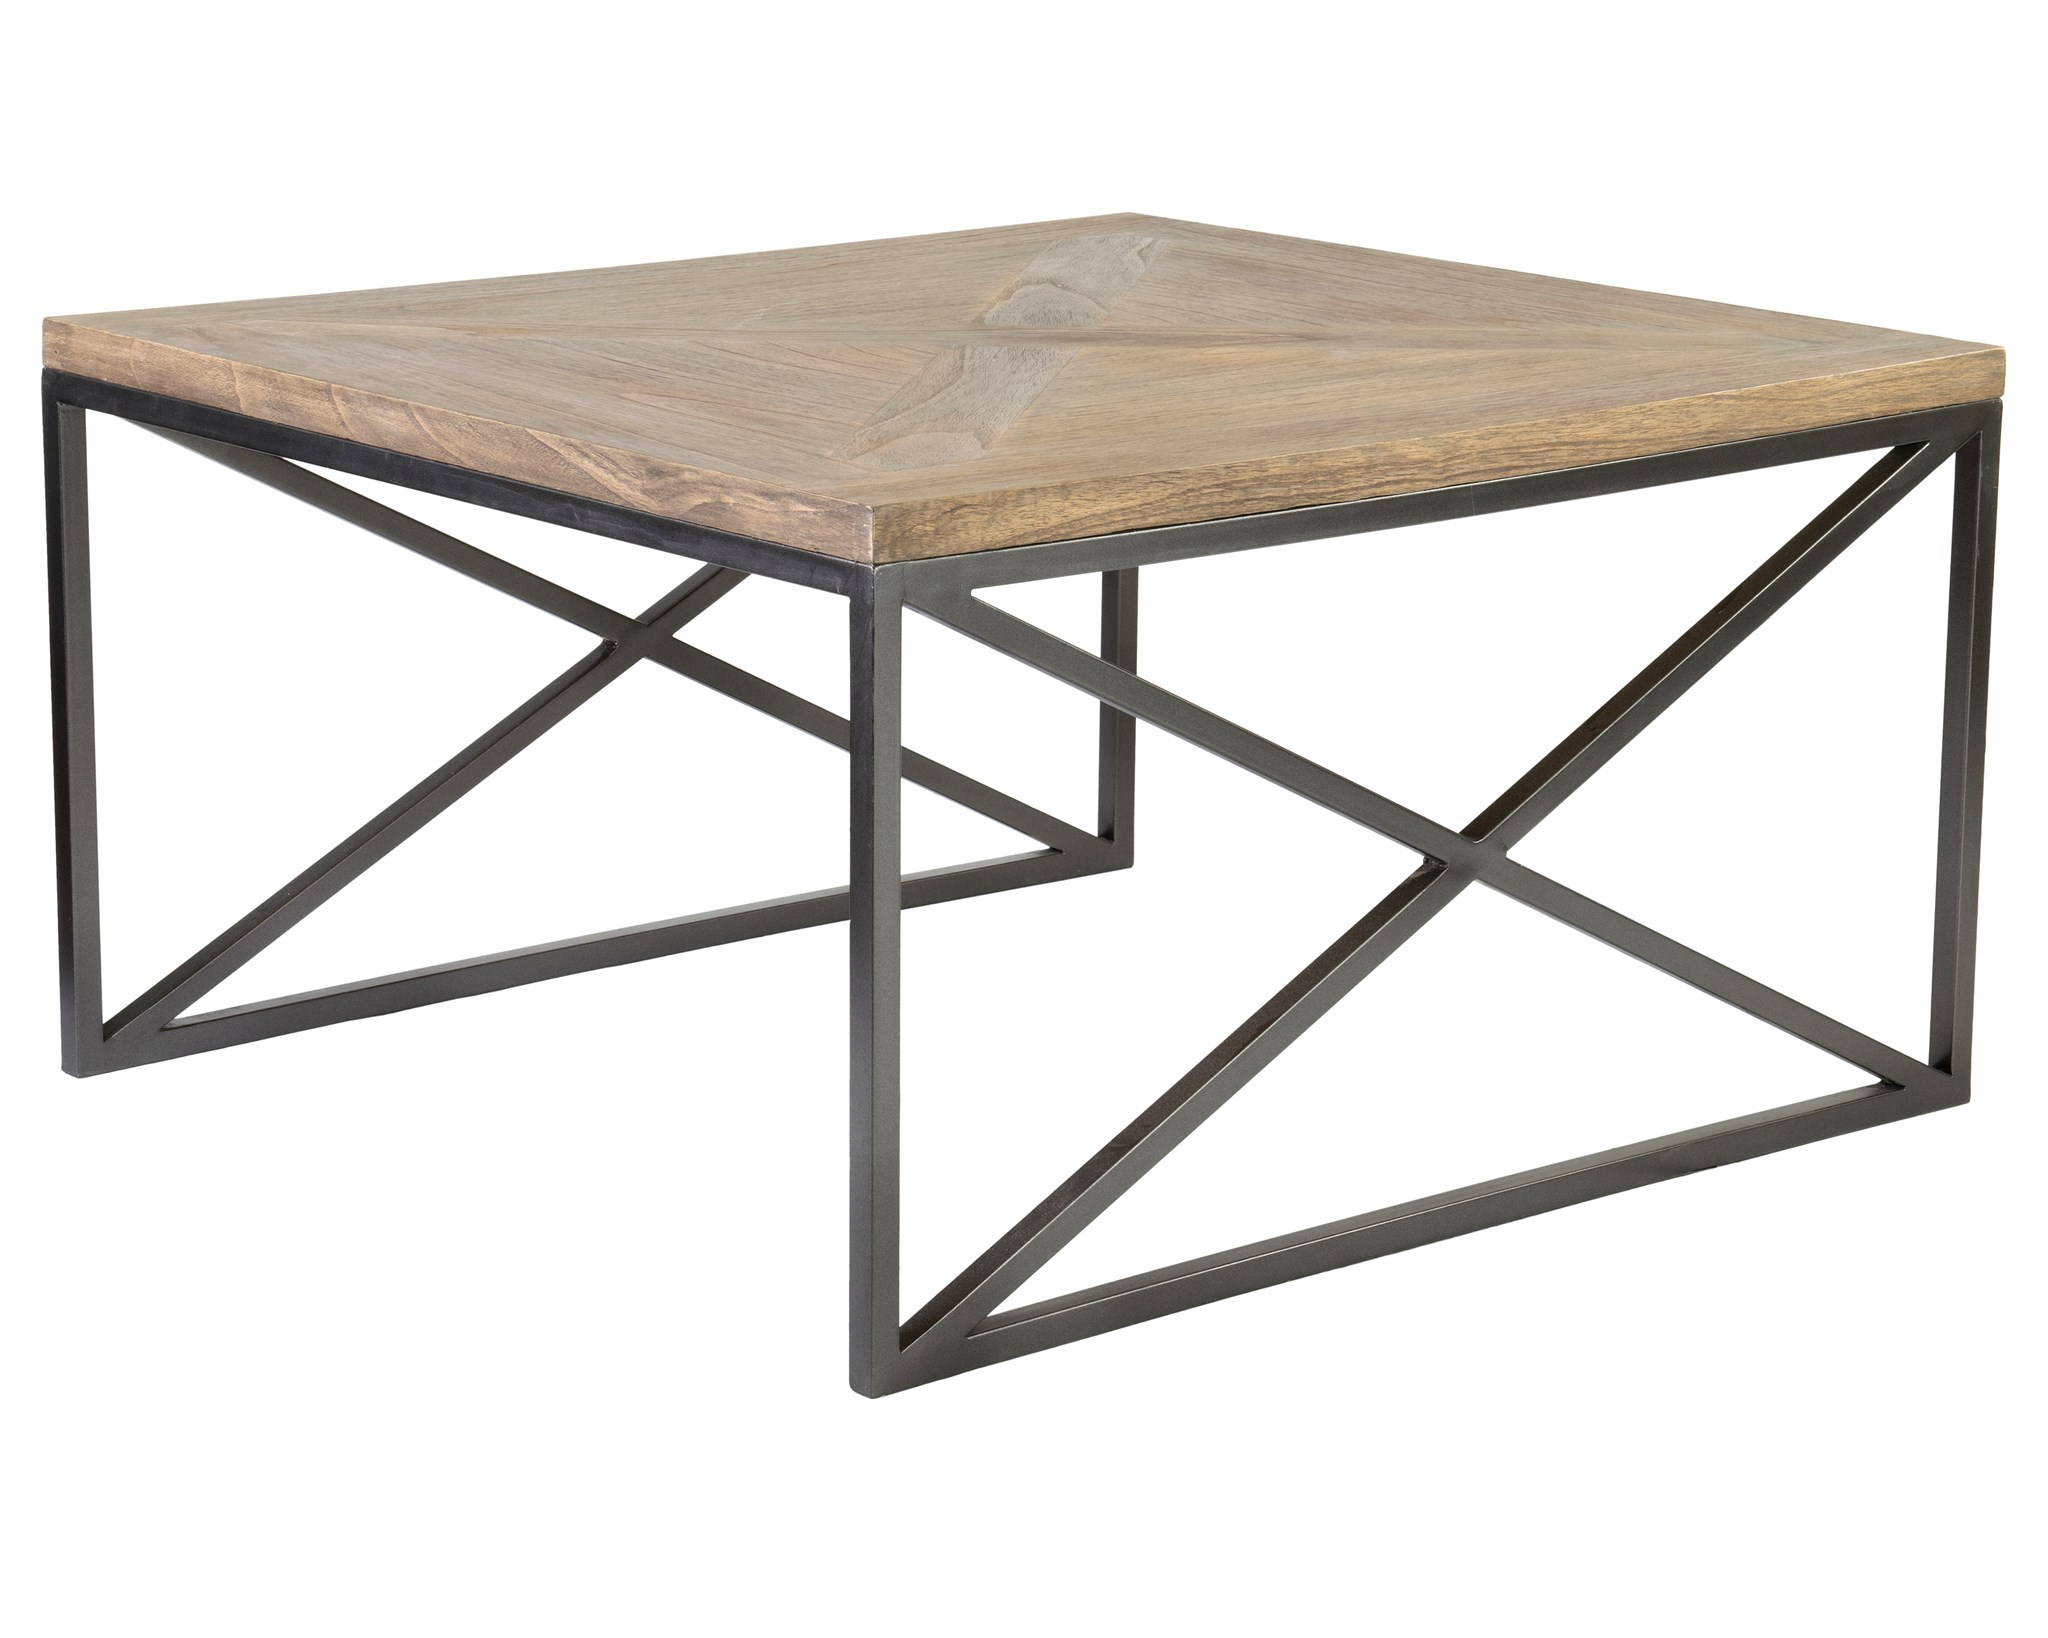 Ellington Coffee Table Set 2 With Wrought Iron Base And Wood Top (35X31.